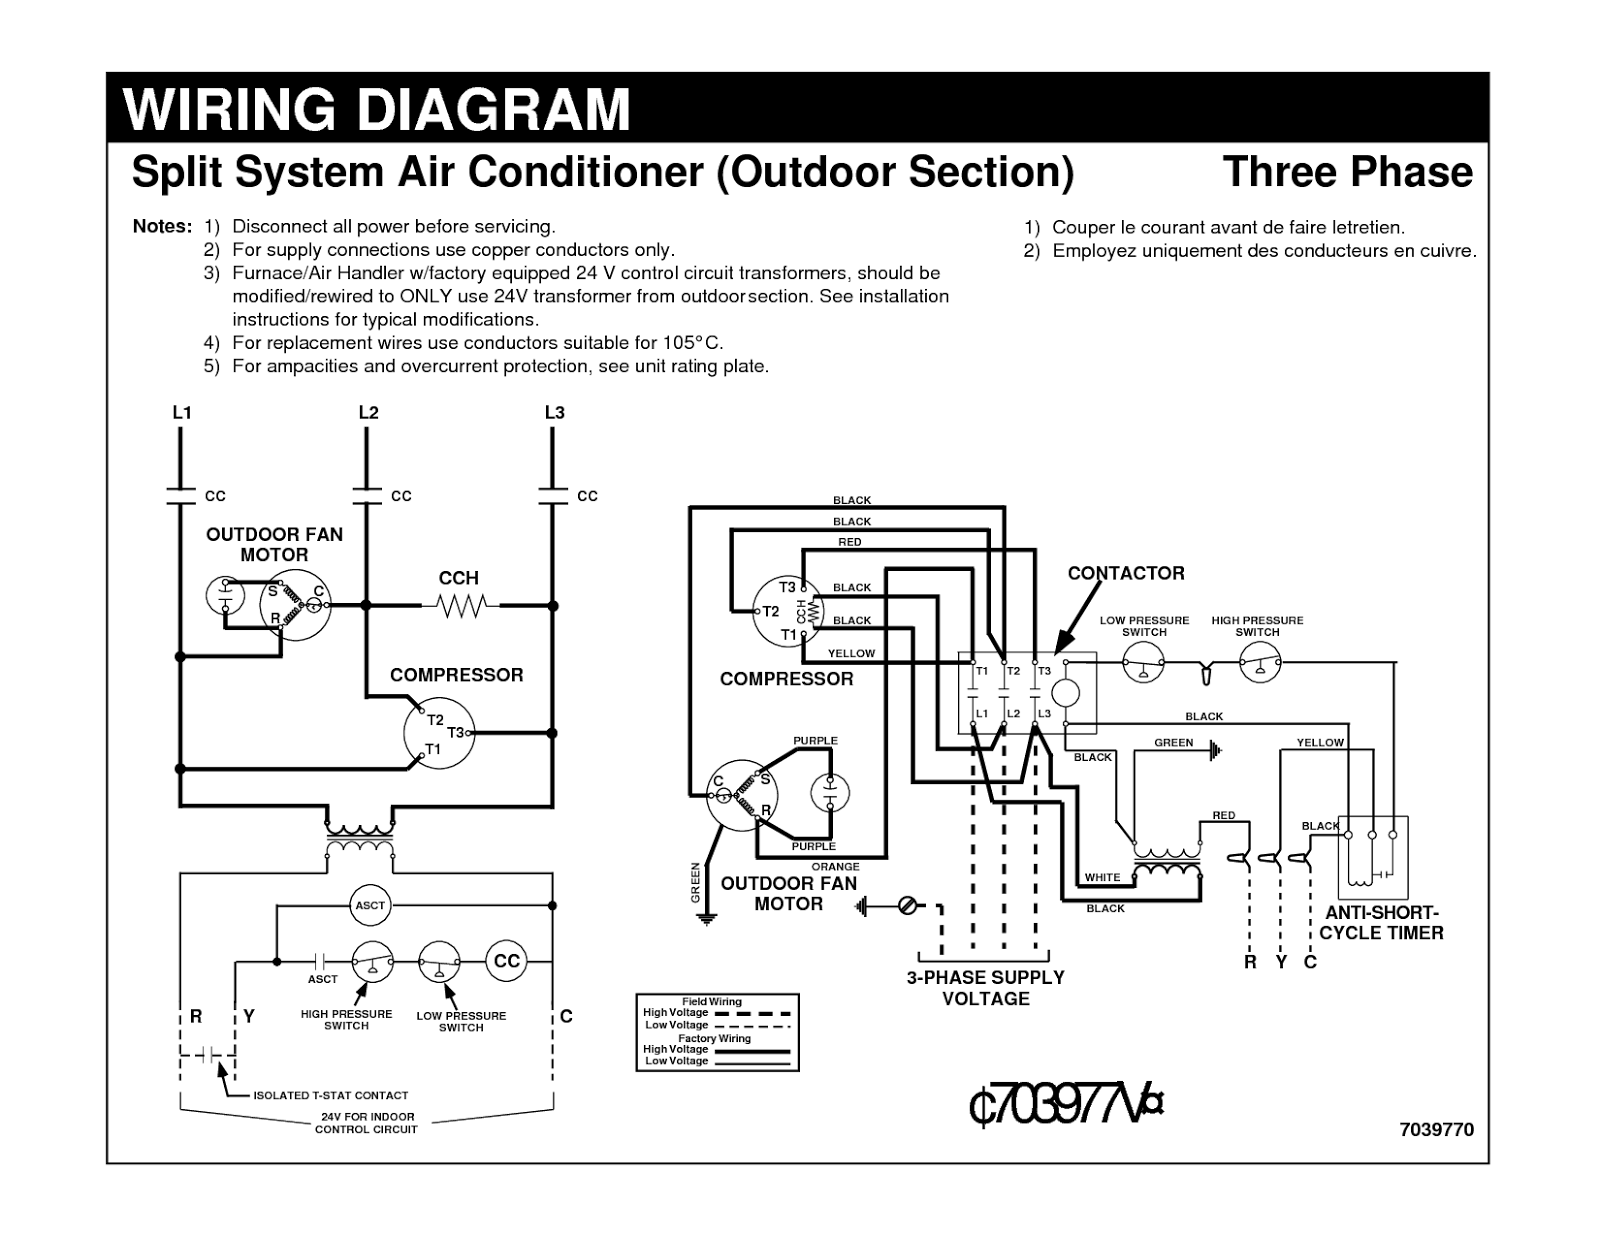 Wiring Diagram York Air Conditioner : Electrical wiring diagrams for air conditioning systems